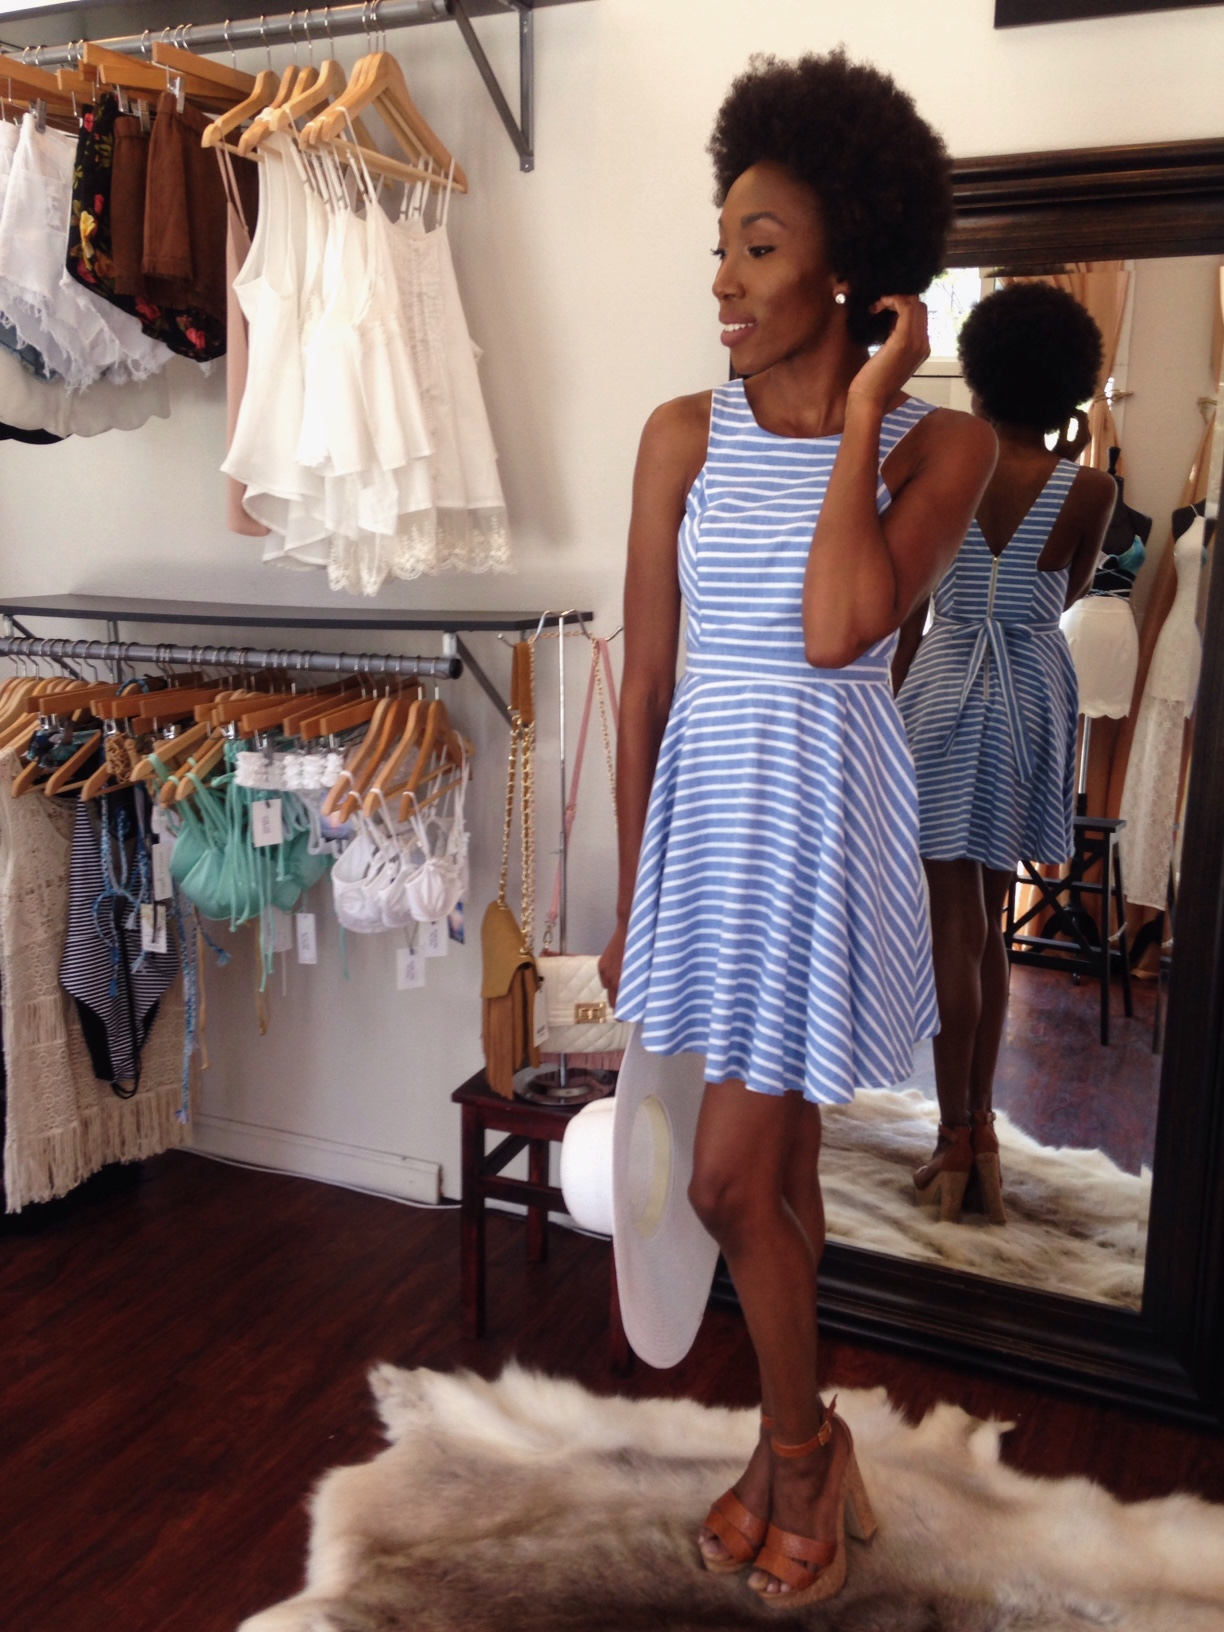 This Dress is perfect for Sunday Brunch or any fun Sunny day event!!